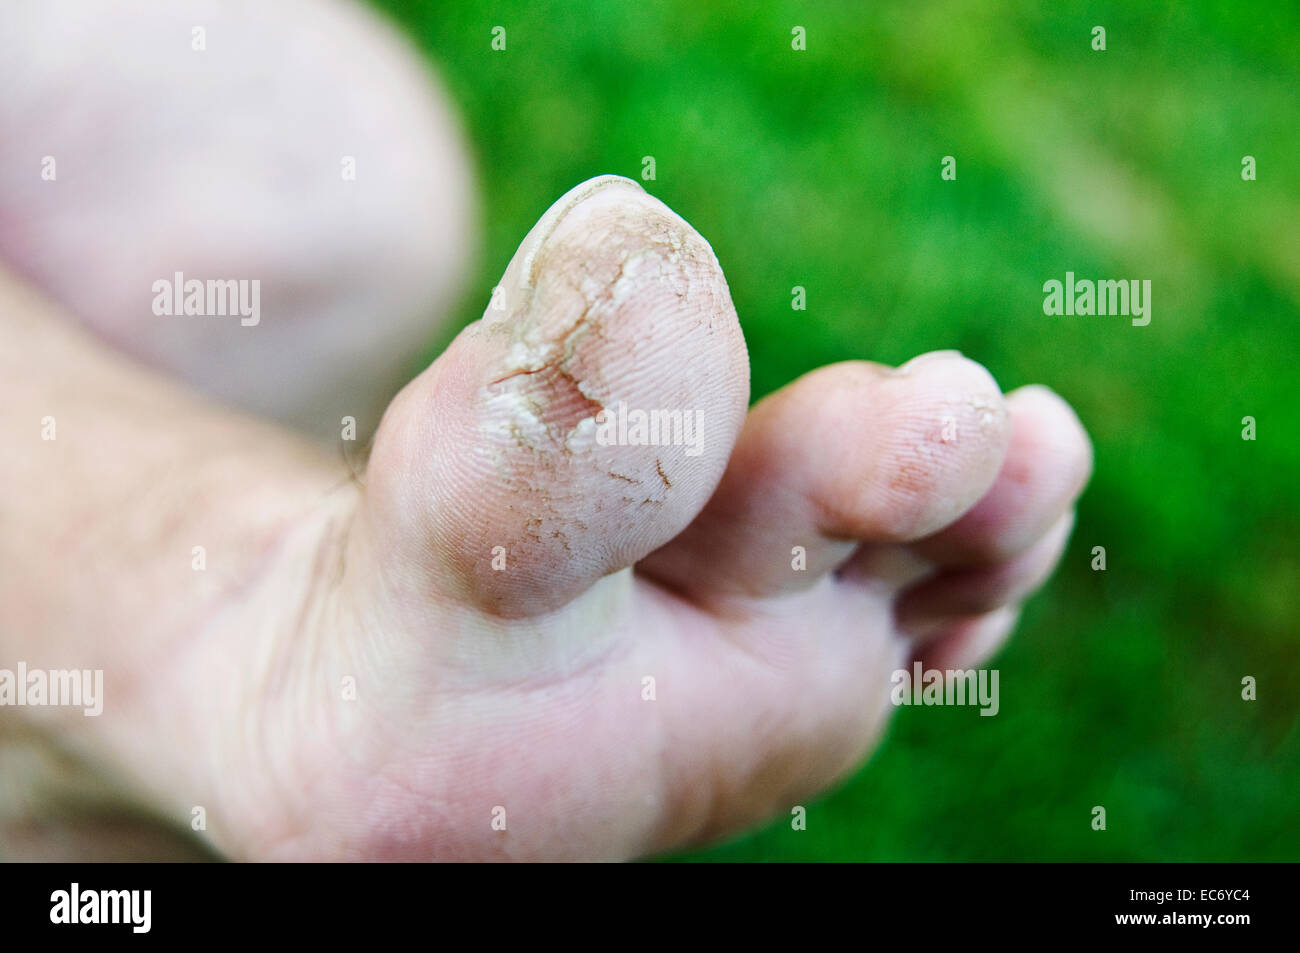 cracked feet - Stock Image